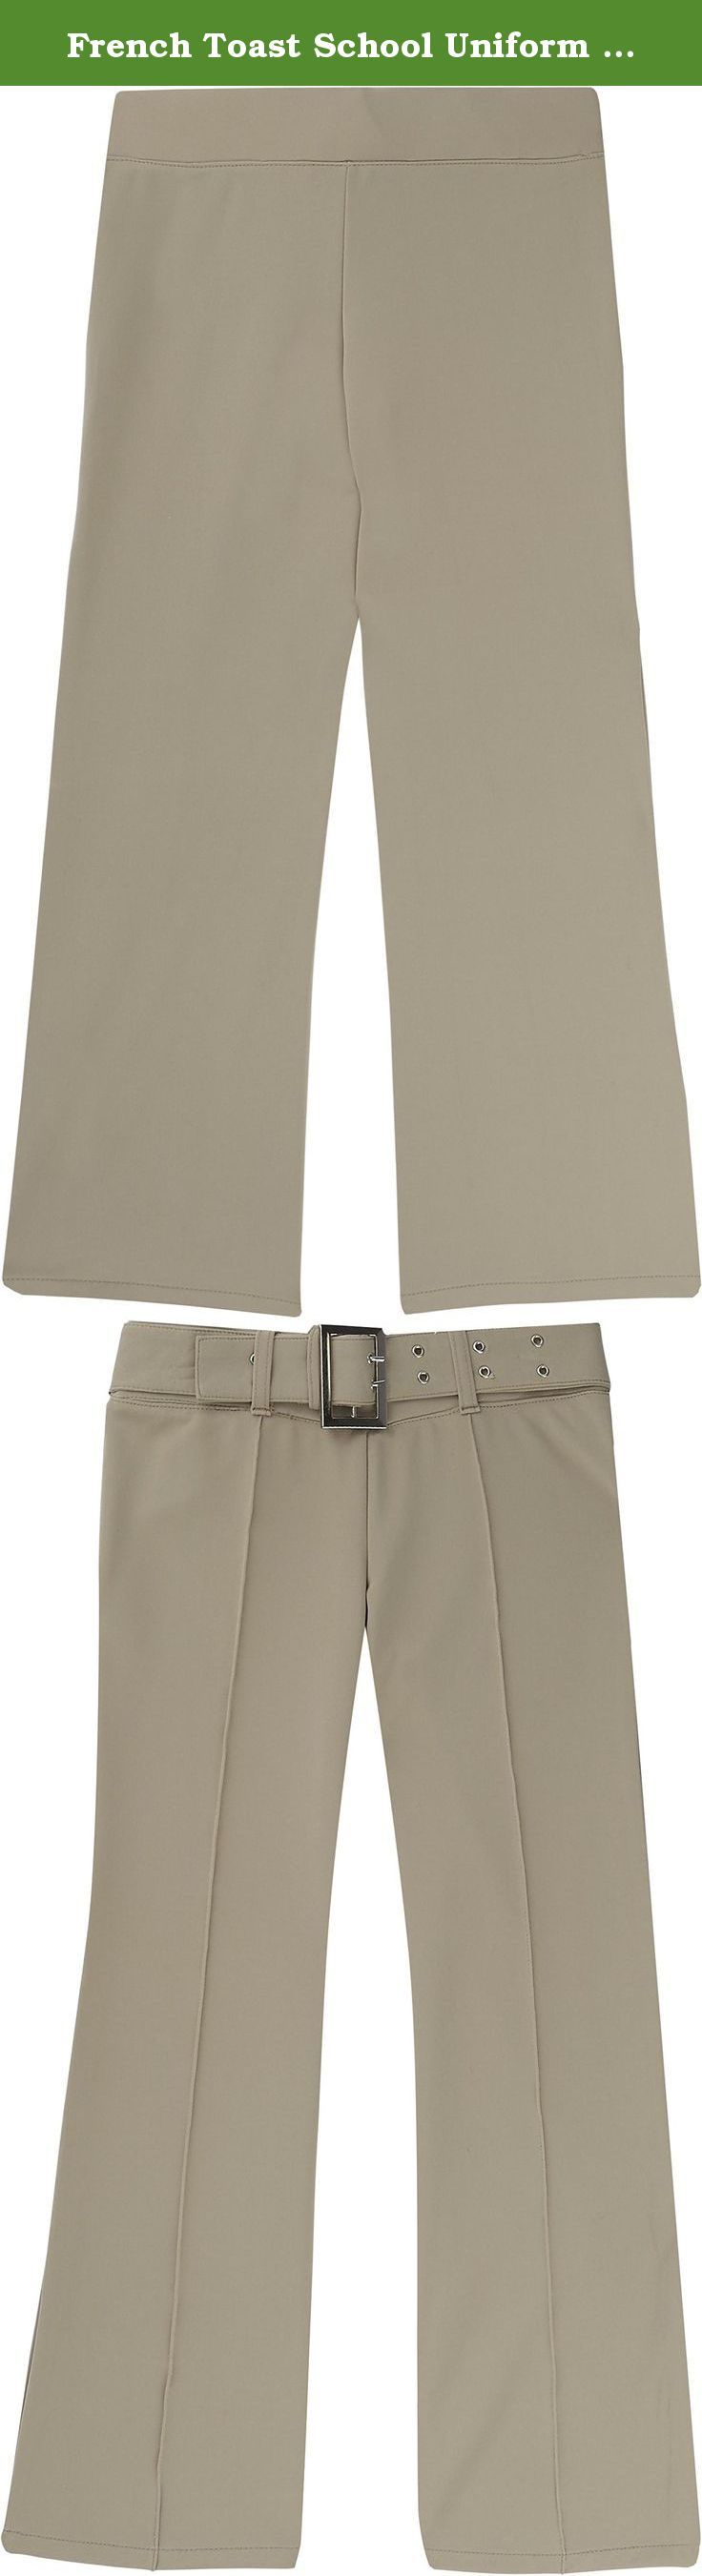 French Toast School Uniform Girls Pull On Self Belt Pants, Khaki, X-Large (14/16). This fitted elastic waist pant blends the best of pull-on comfort with an eye-catching stylish mock belt. Bootleg cut, drop waist, and pintucked front adds extra fashion. Polyester/spandex. Imported. Machine wash.